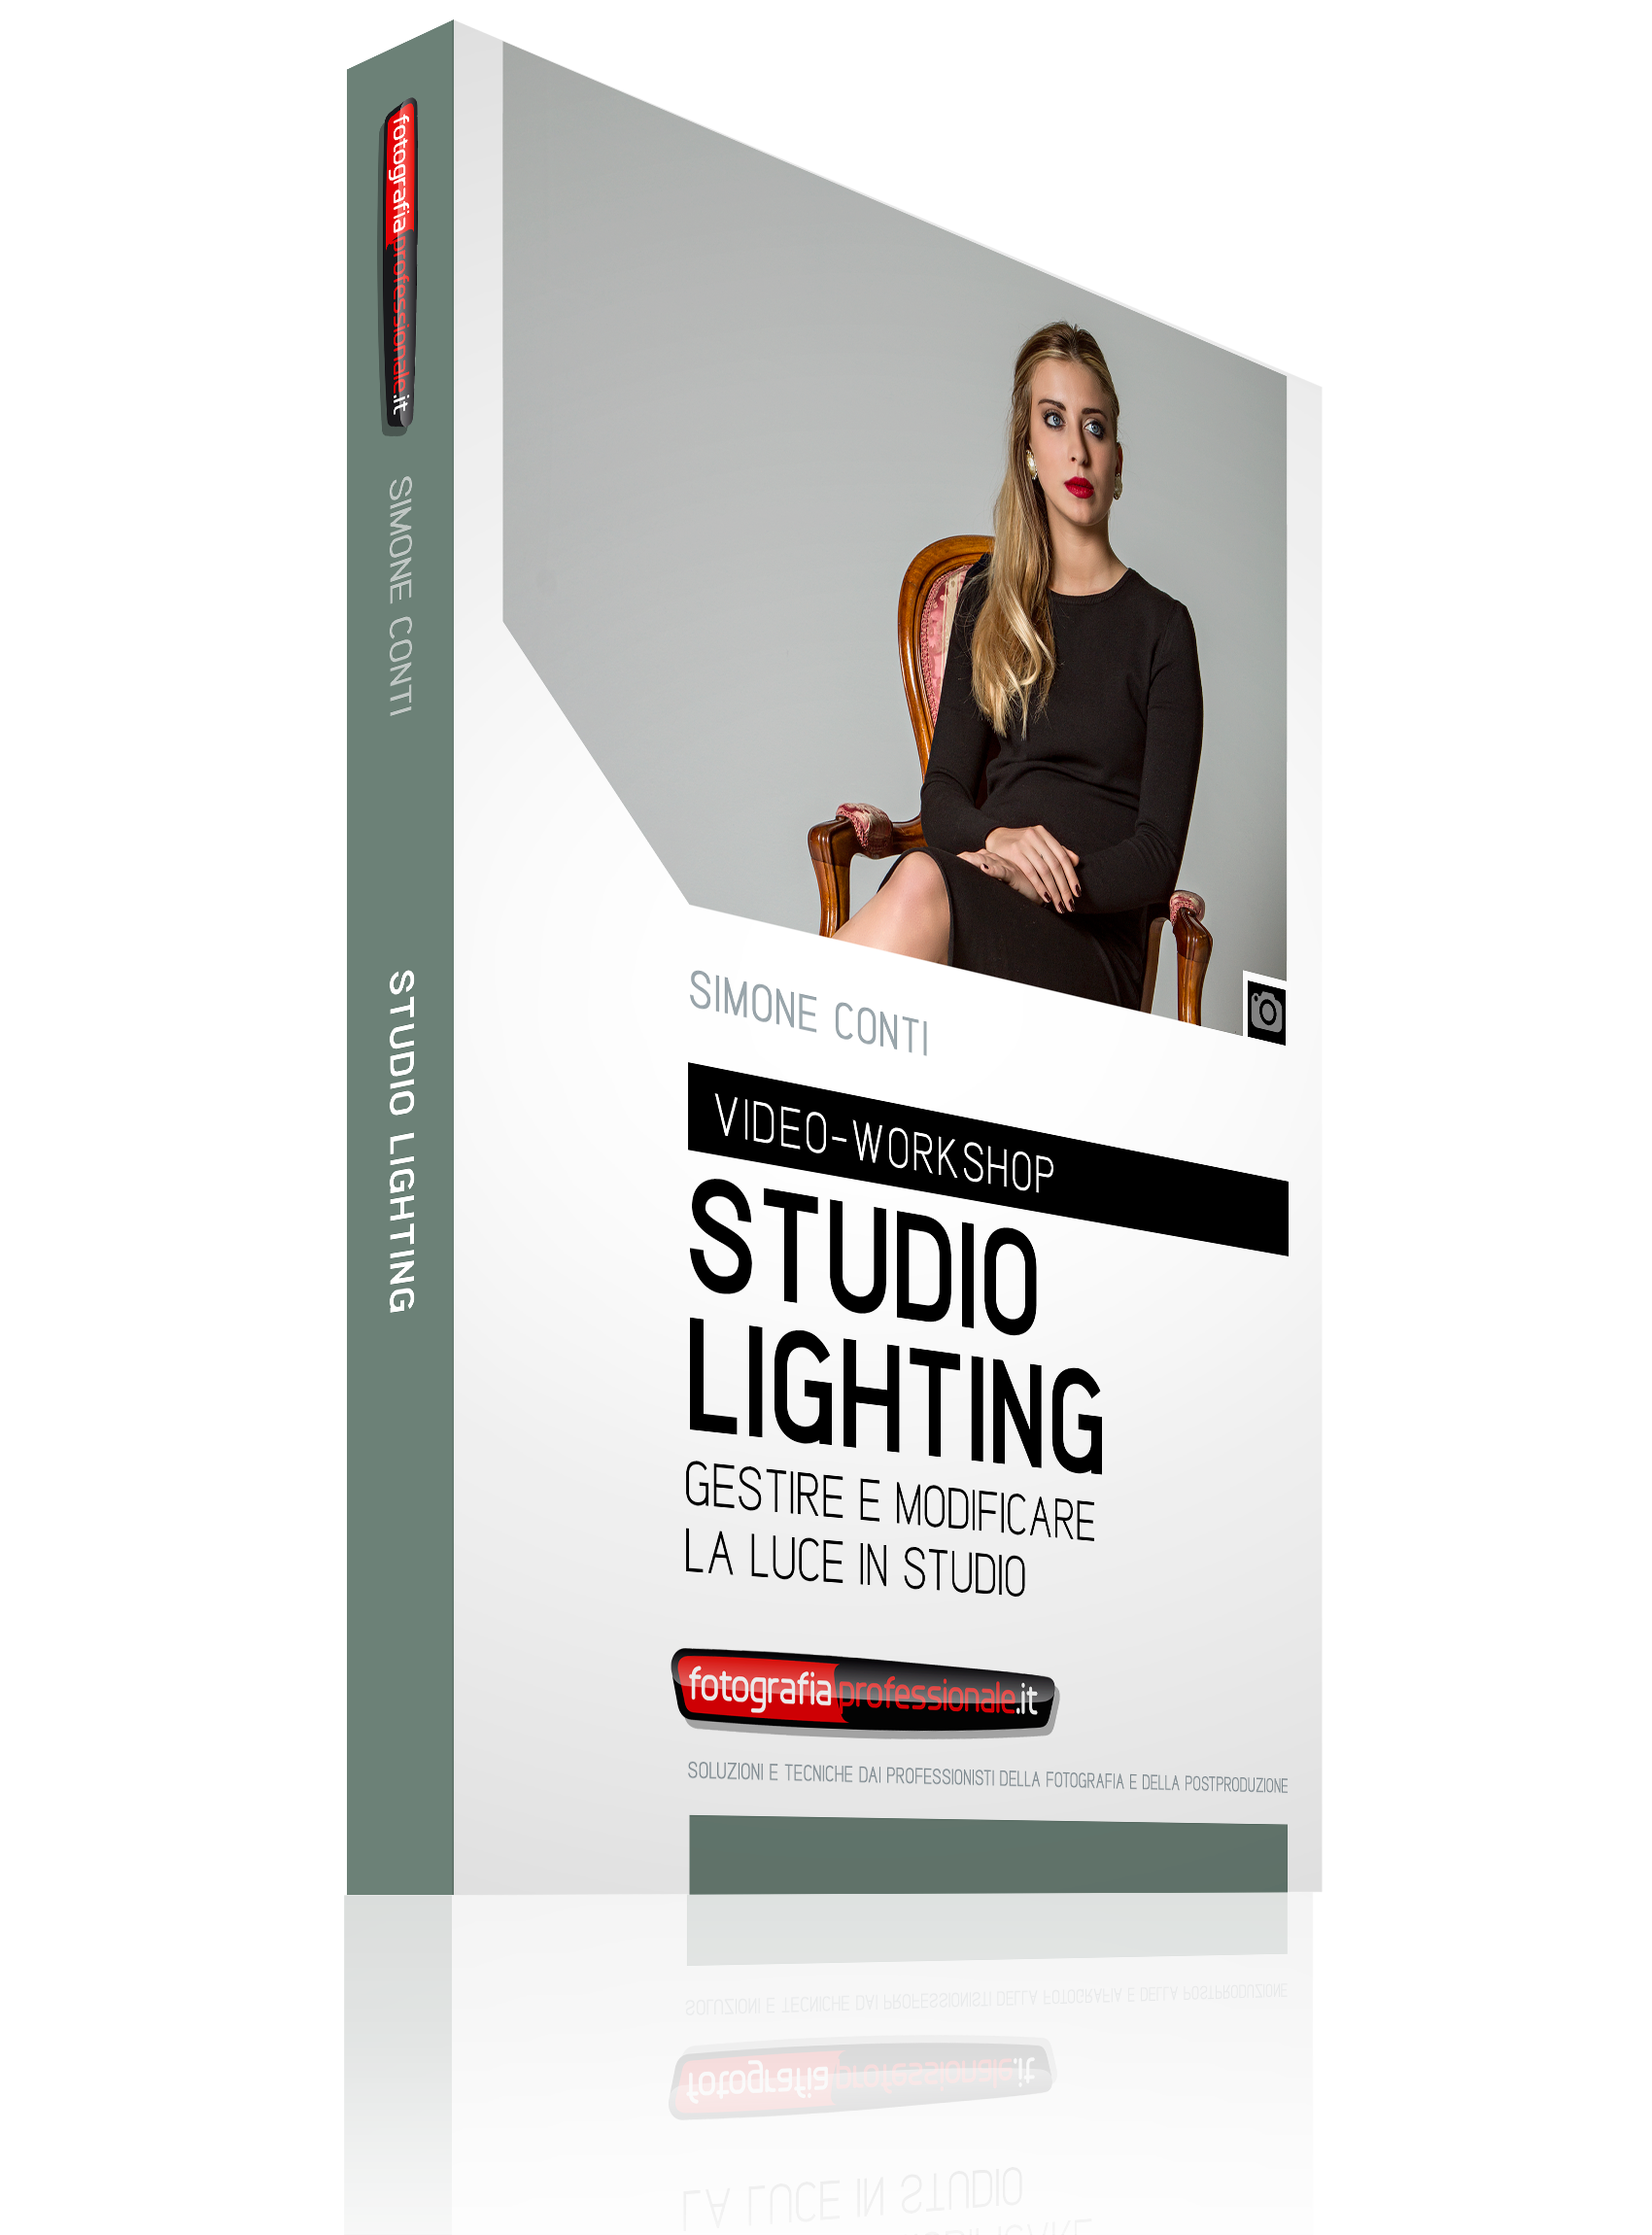 Studio Lighting - Gestire e modificare la luce in studio